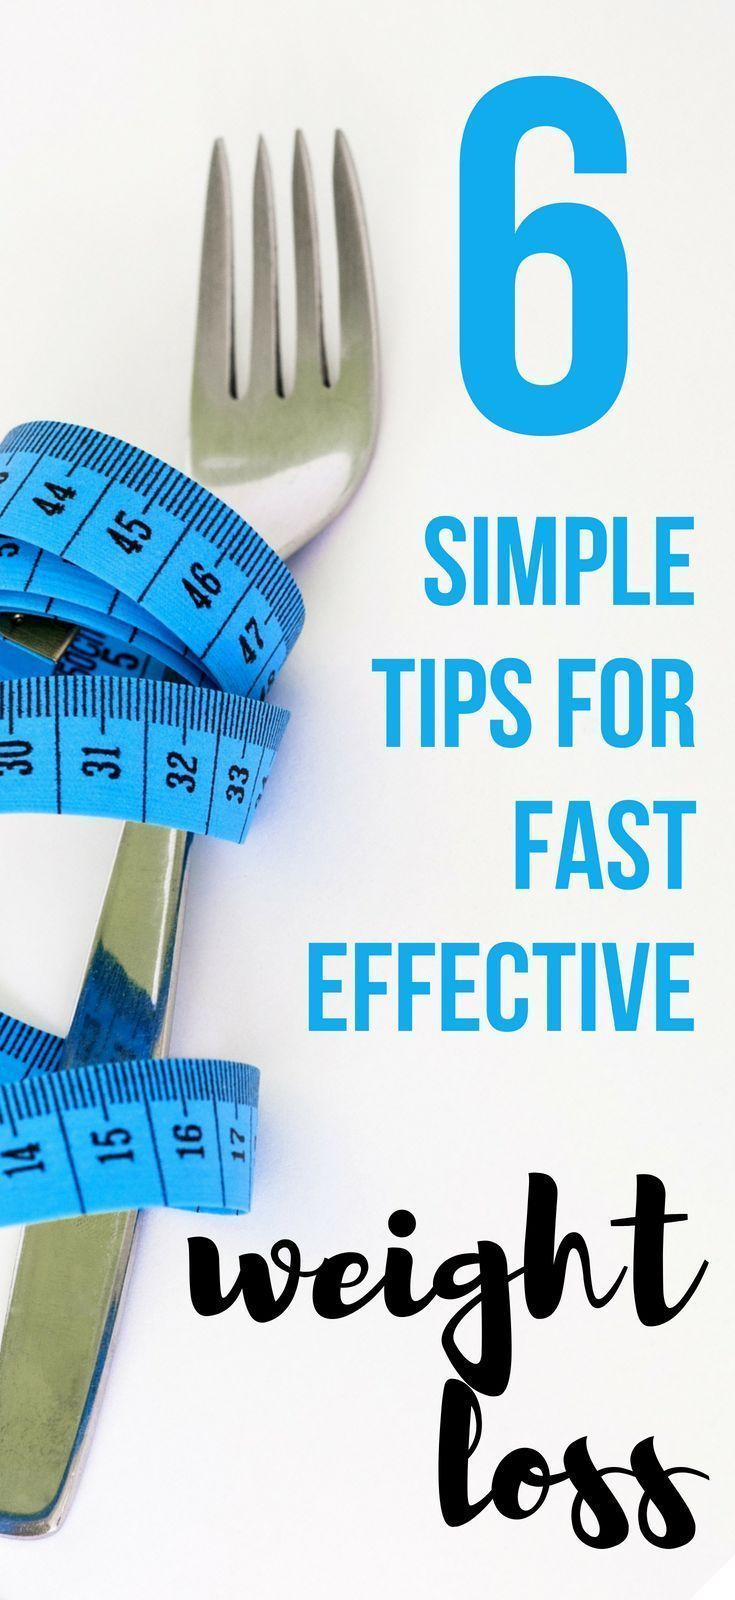 Fast weight loss running tips #easyweightloss  | best way to reduce weight#healthyfood #fit #fitfam